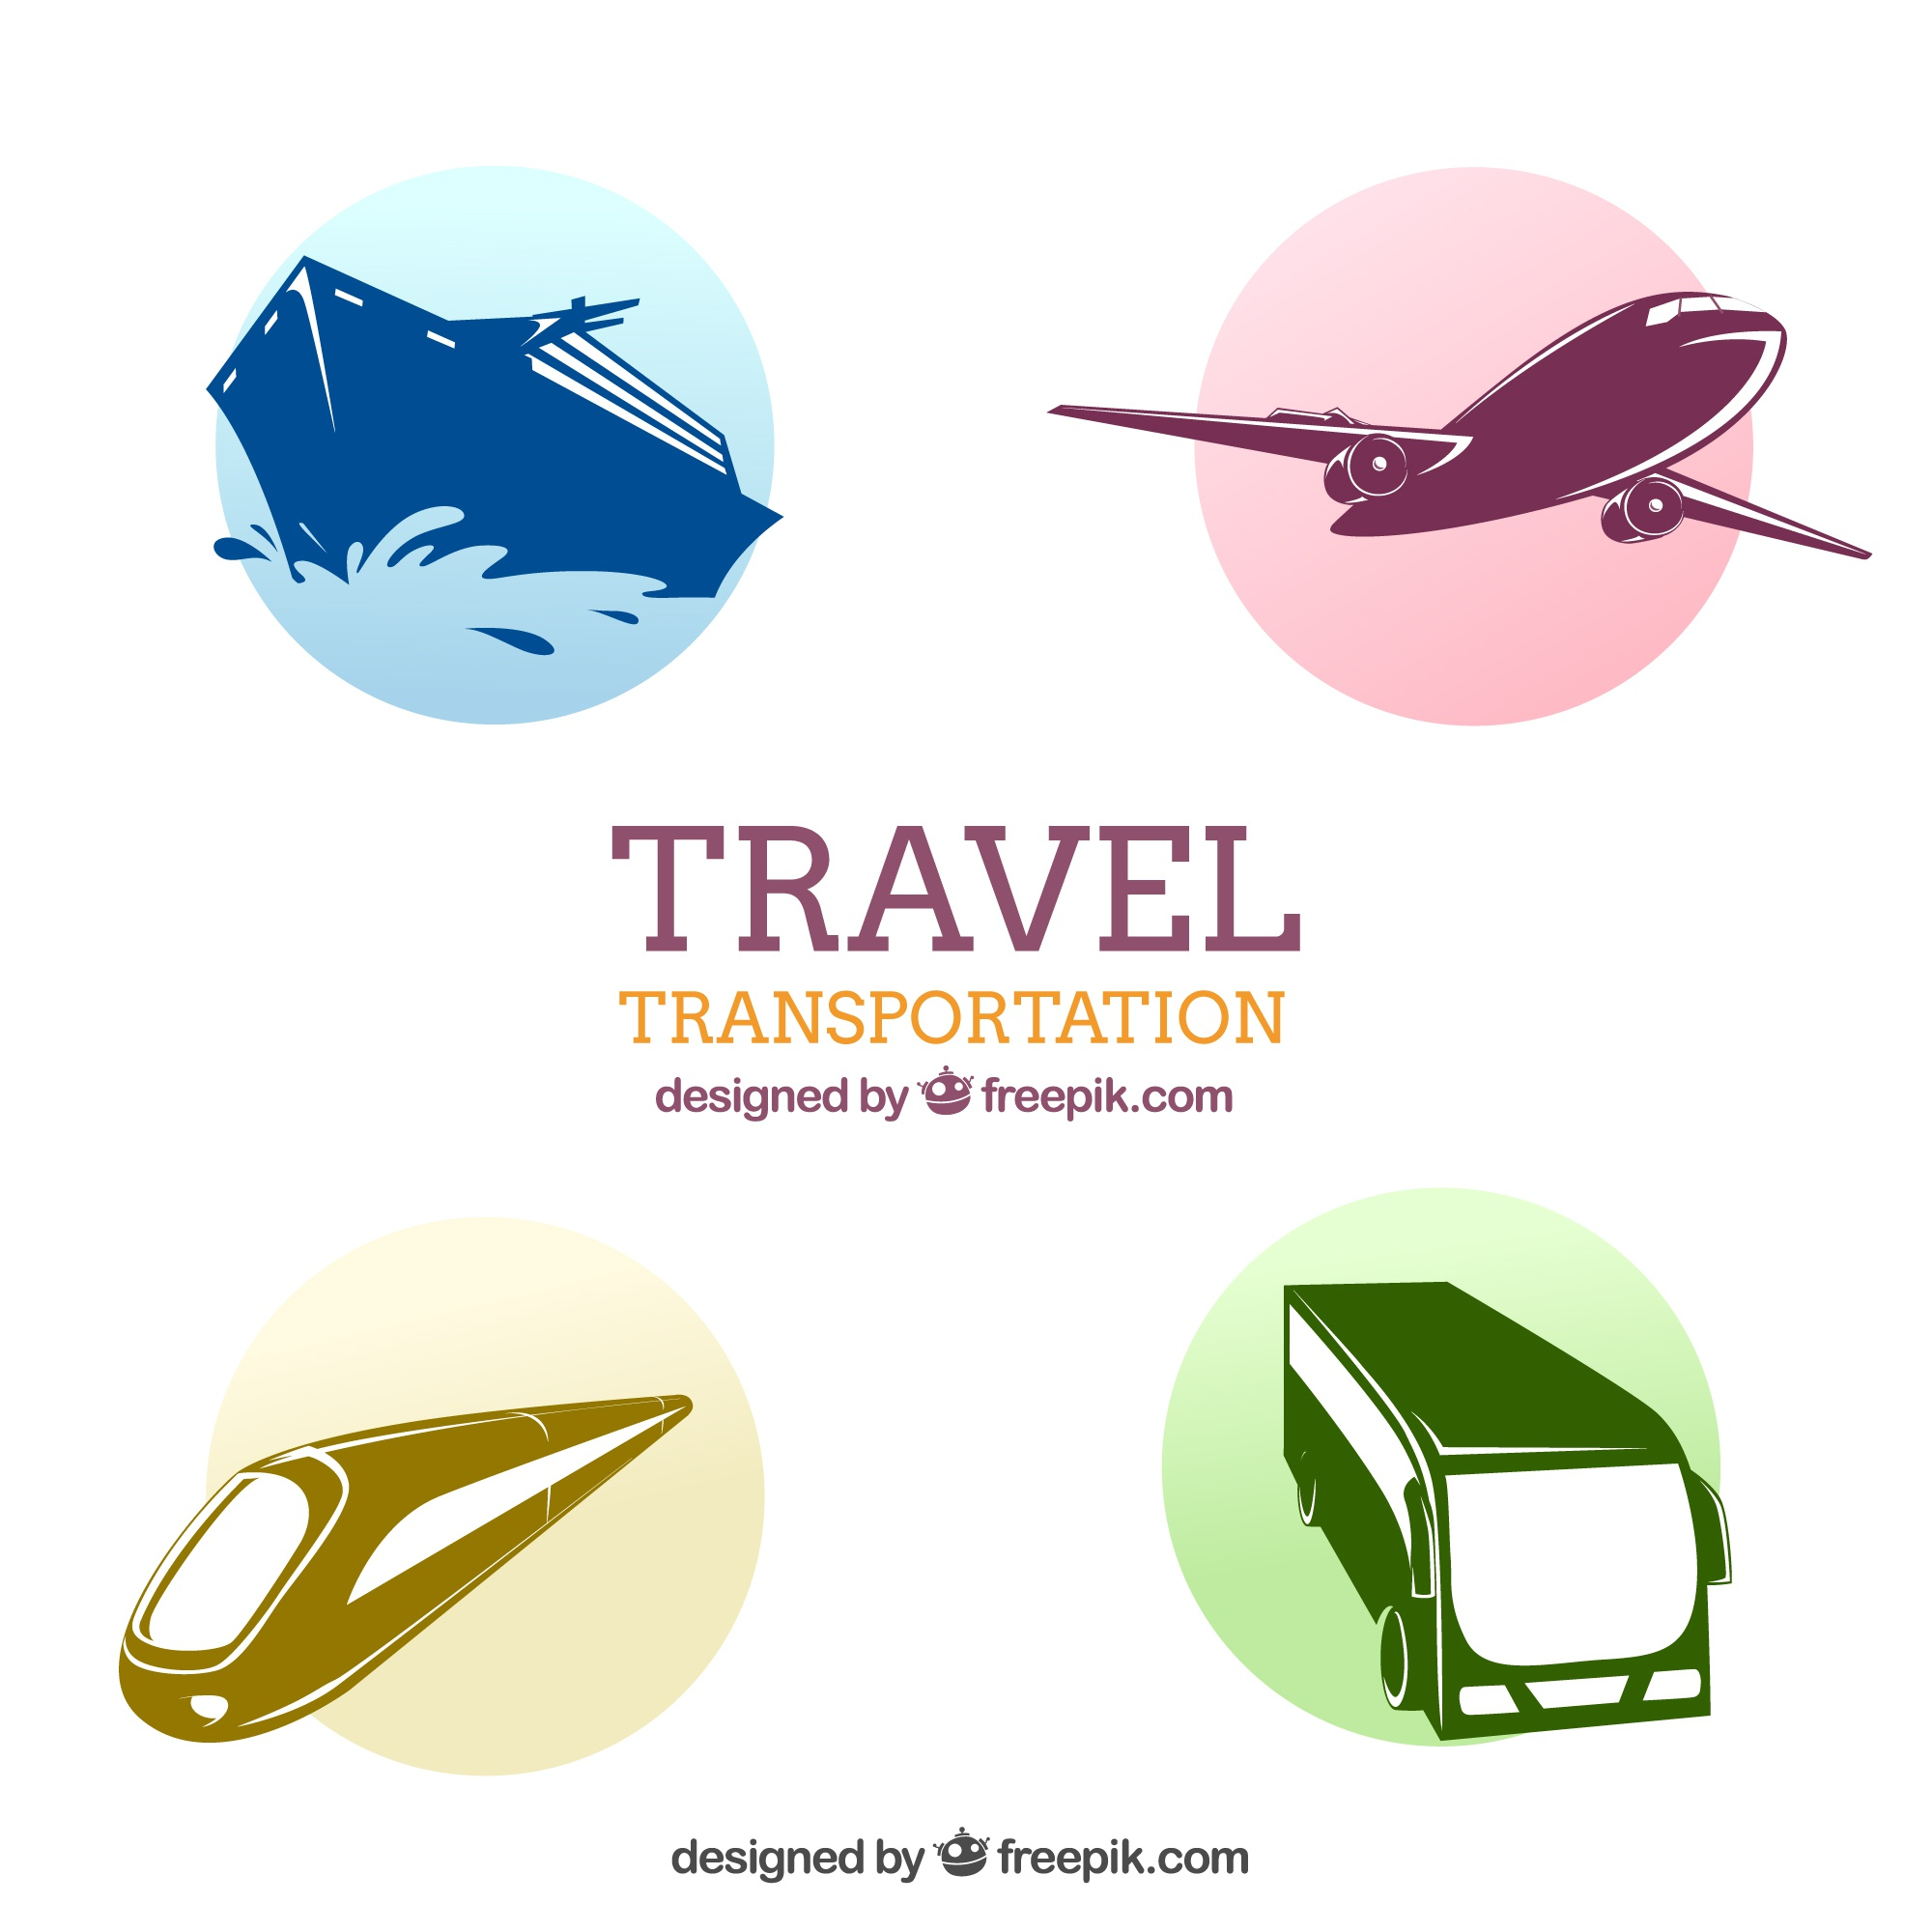 Travel transportation icons pack